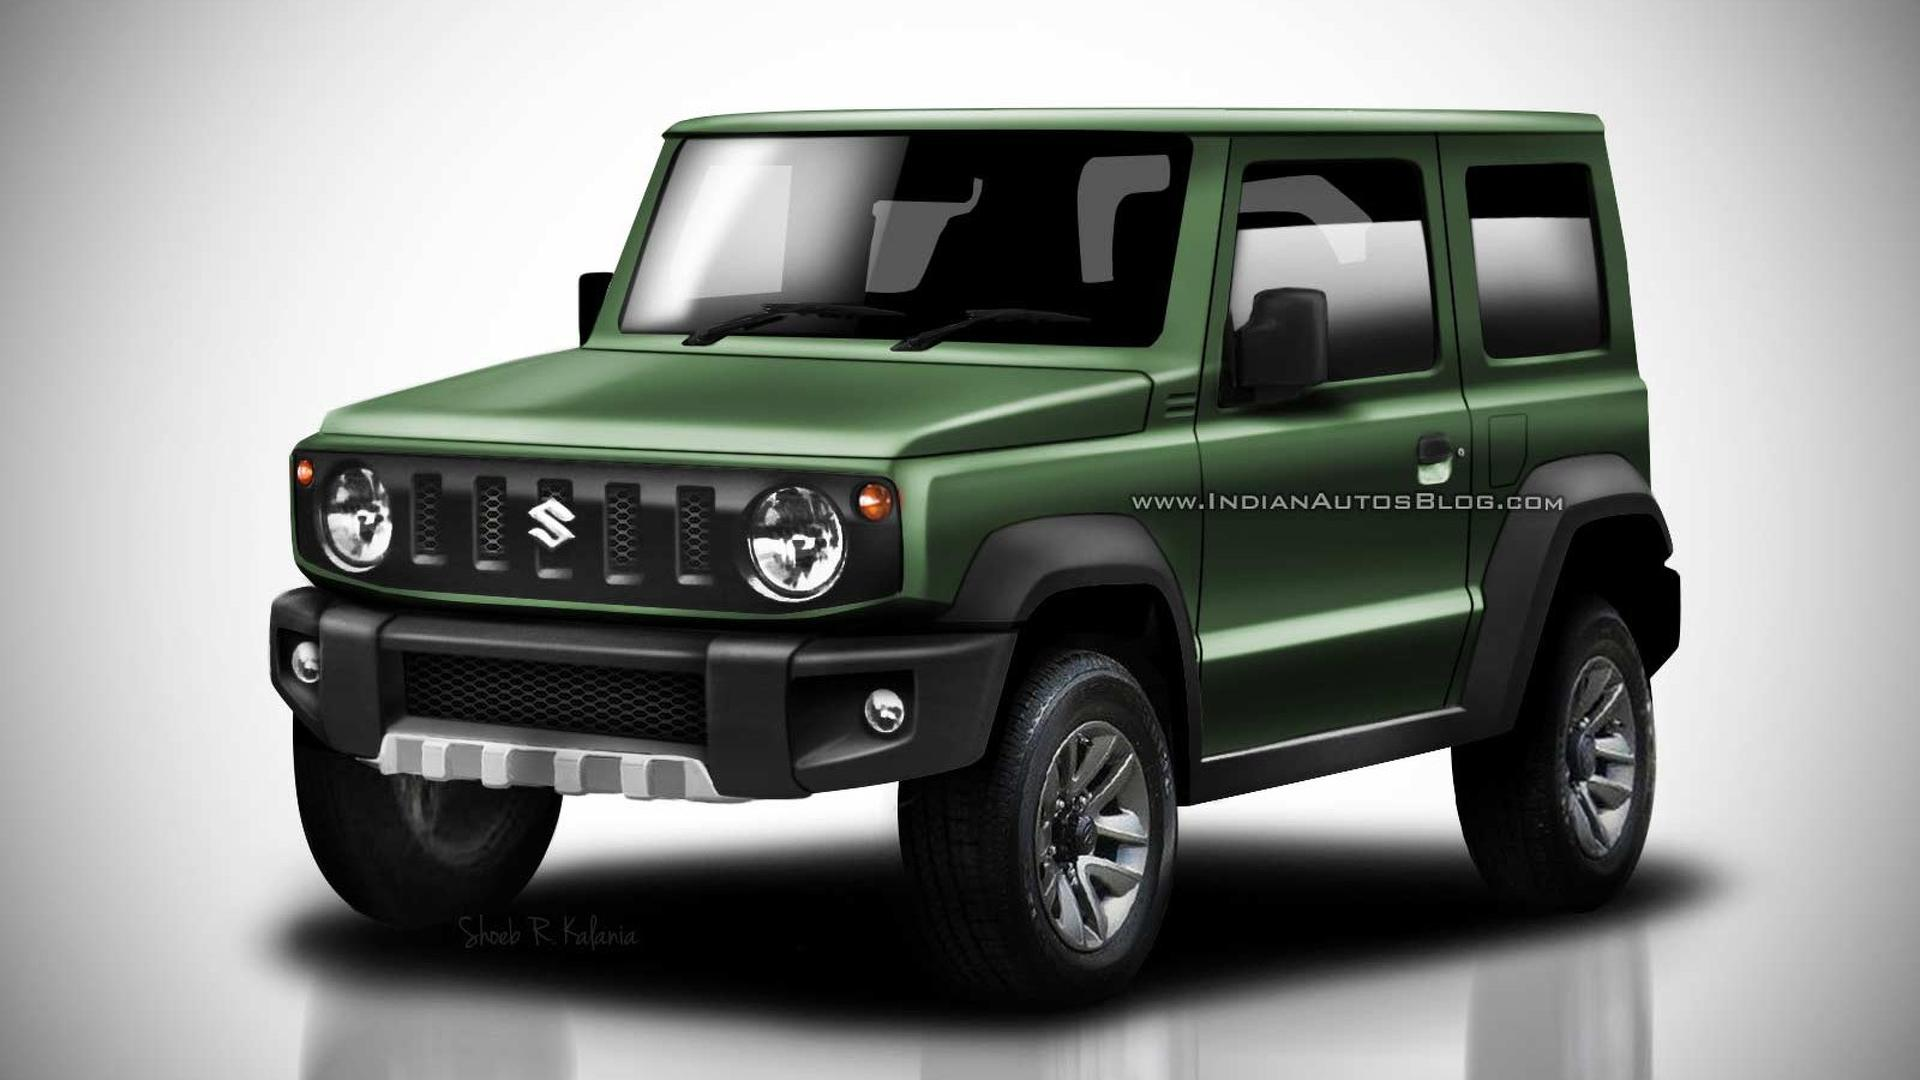 2018 Suzuki Jimny Leaked Images Go High Res In Colorful Renders